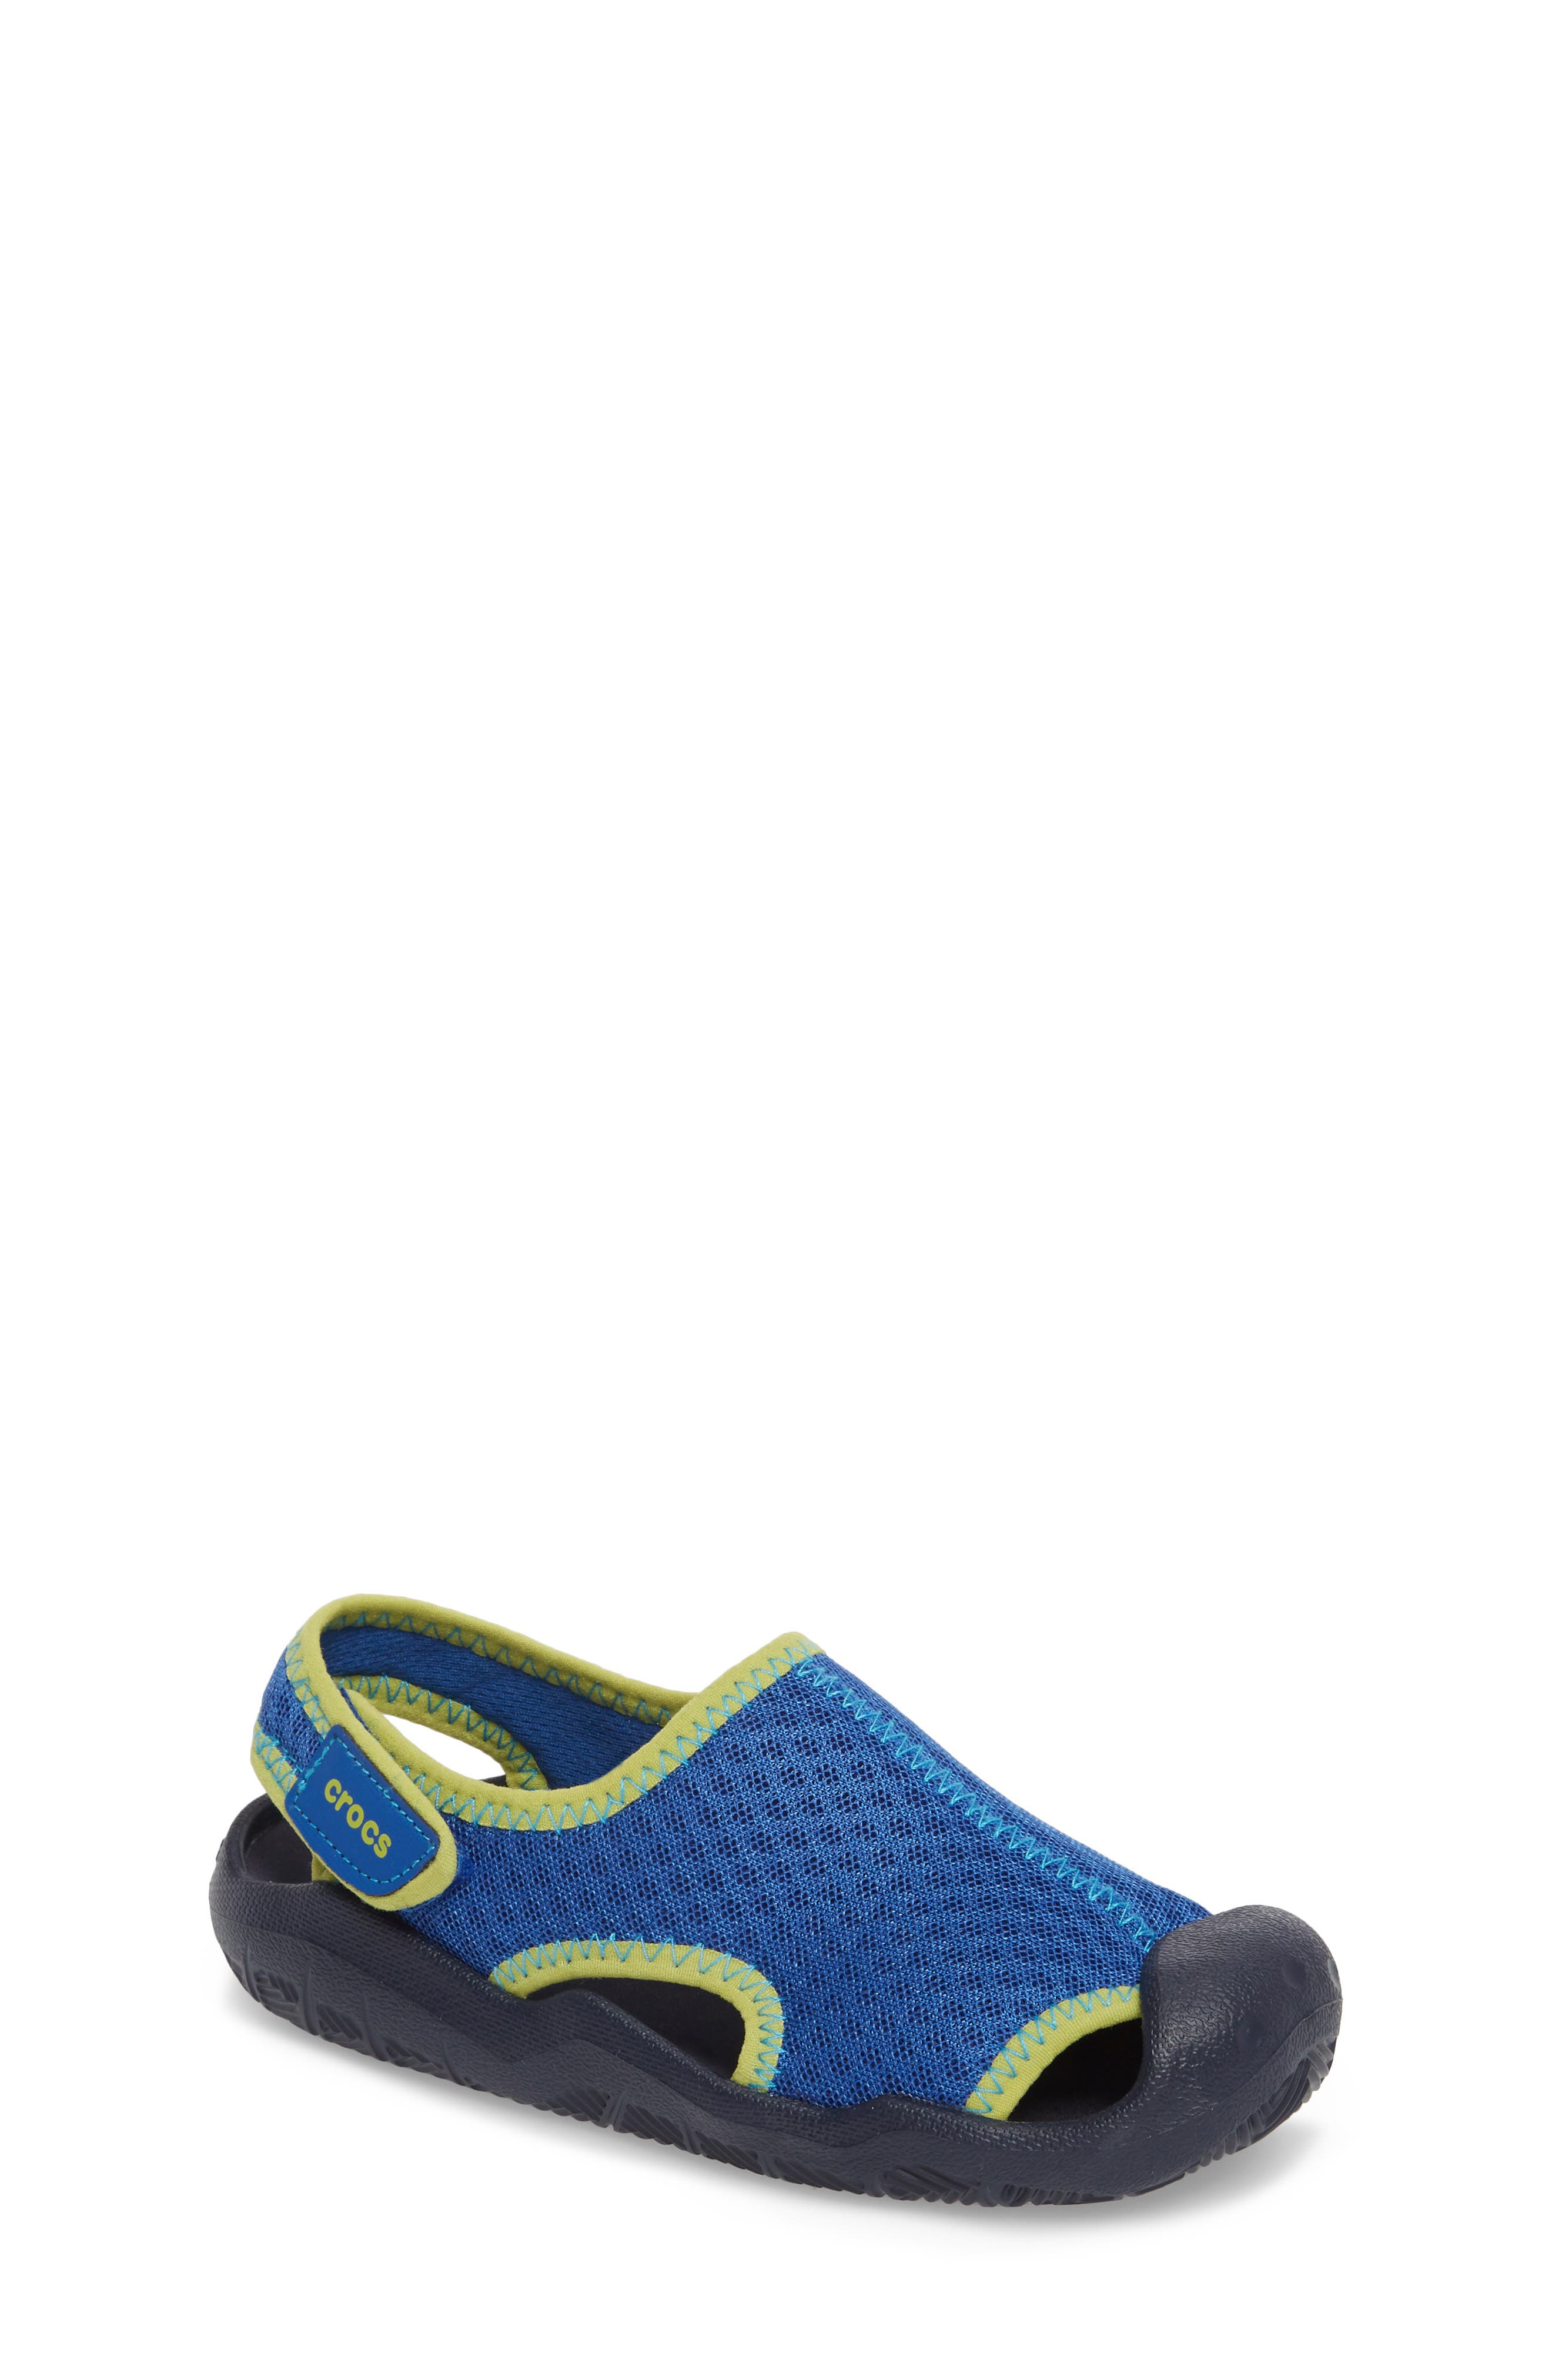 Swiftwater Sandal,                             Main thumbnail 3, color,